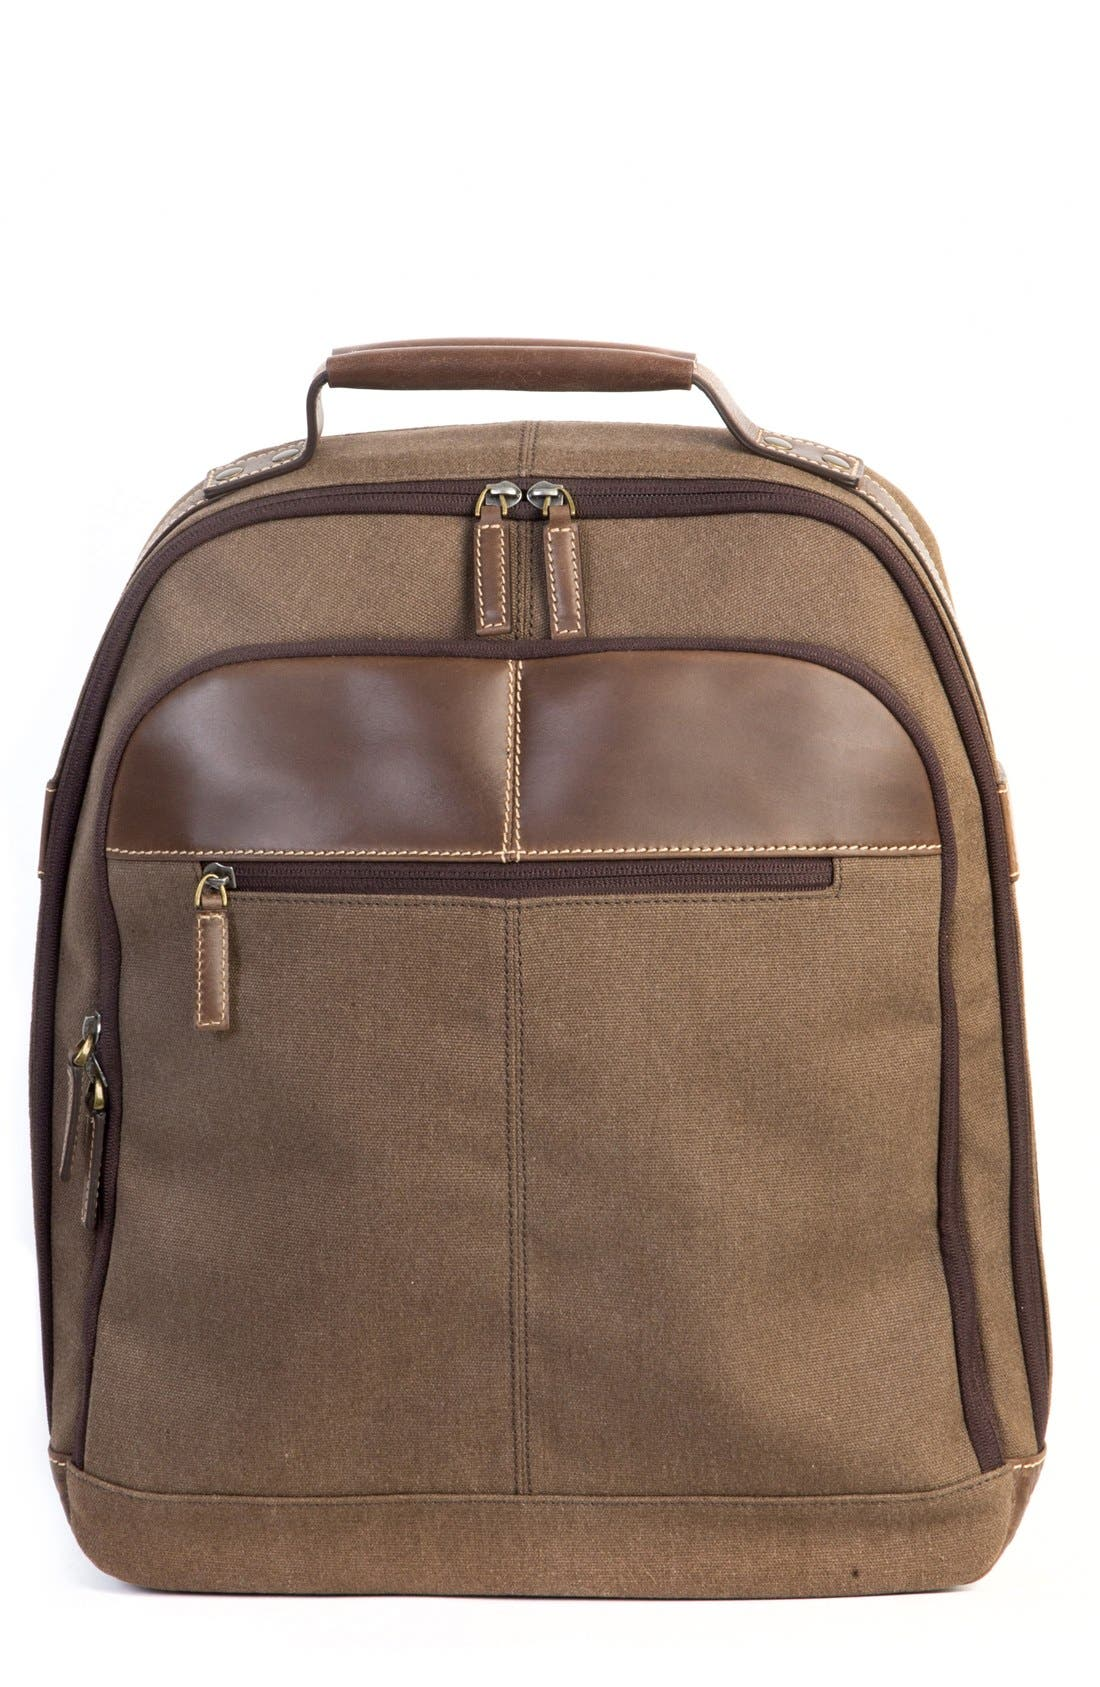 'Bryant LTE' Backpack,                             Main thumbnail 1, color,                             207